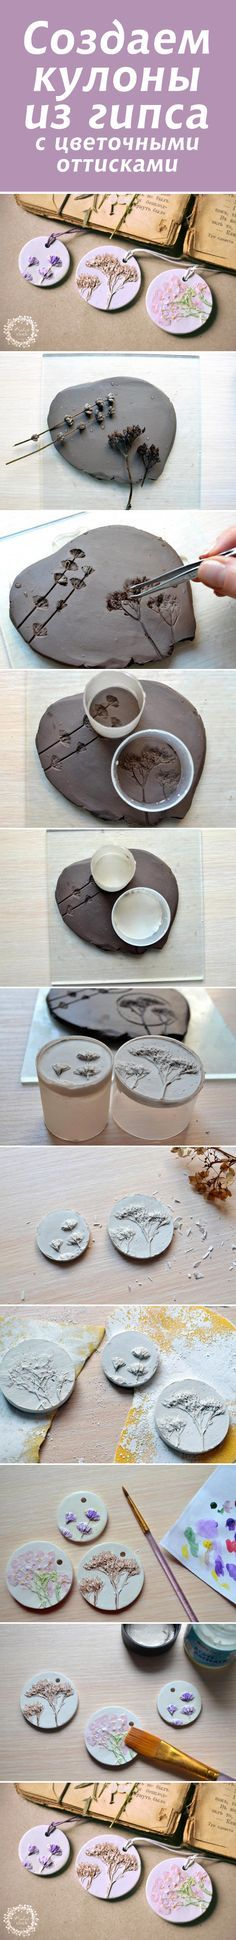 I wonder if an idea like this could be used for making moulds out of natural objects for Polymer Clay.  Создаем нежные гипсовые кулоны с оттисками цветов #diy #tutorial